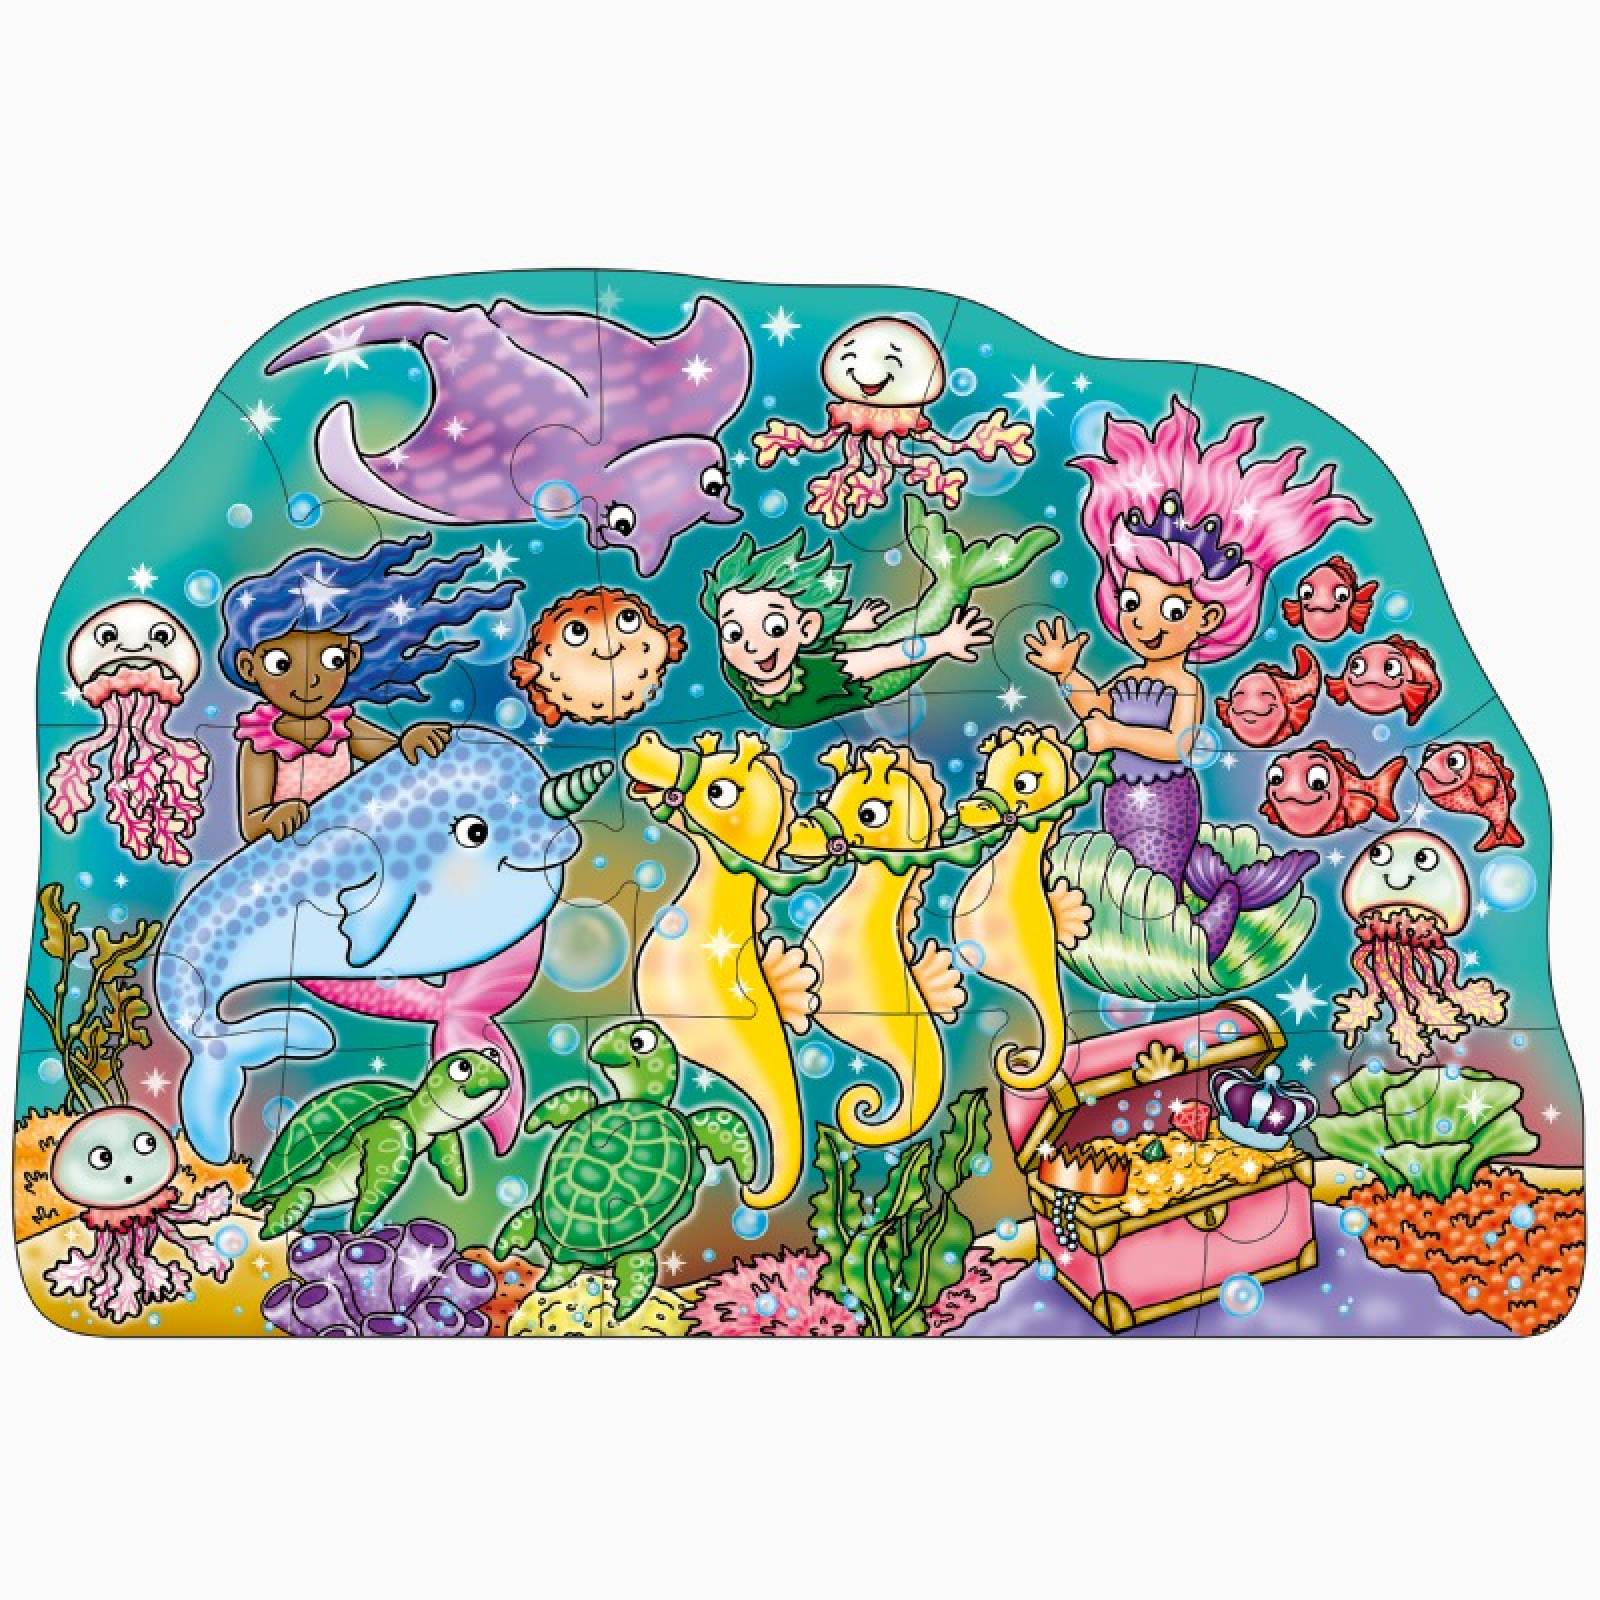 Mermaid Fun Jigsaw Puzzle 15 Piece By Orchard Toys 2+ thumbnails